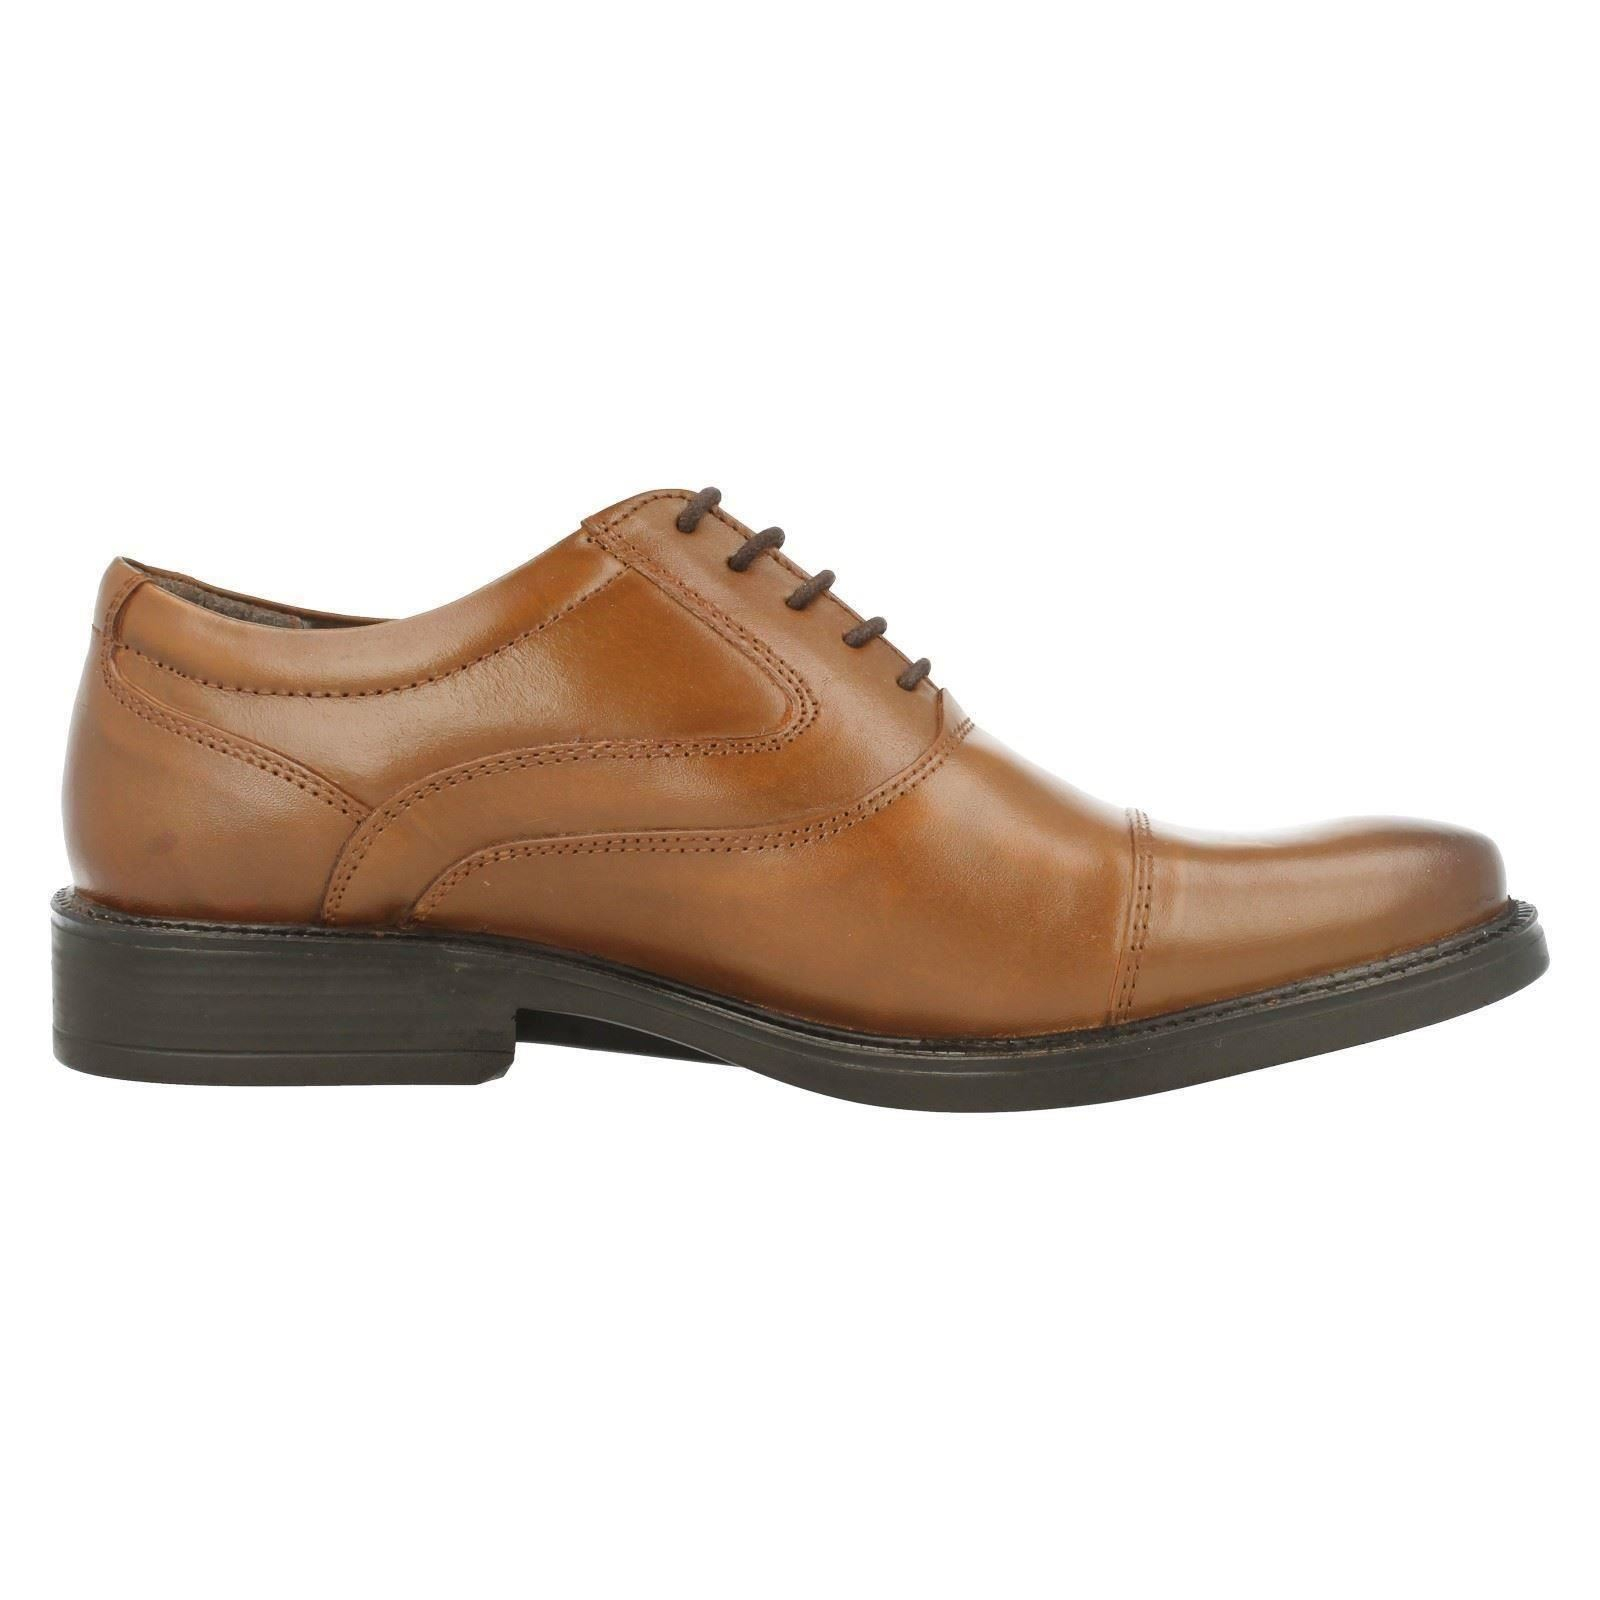 Mens Hush Puppies Formal Lace Up Leather Shoes - Rockford Oxford   EBay